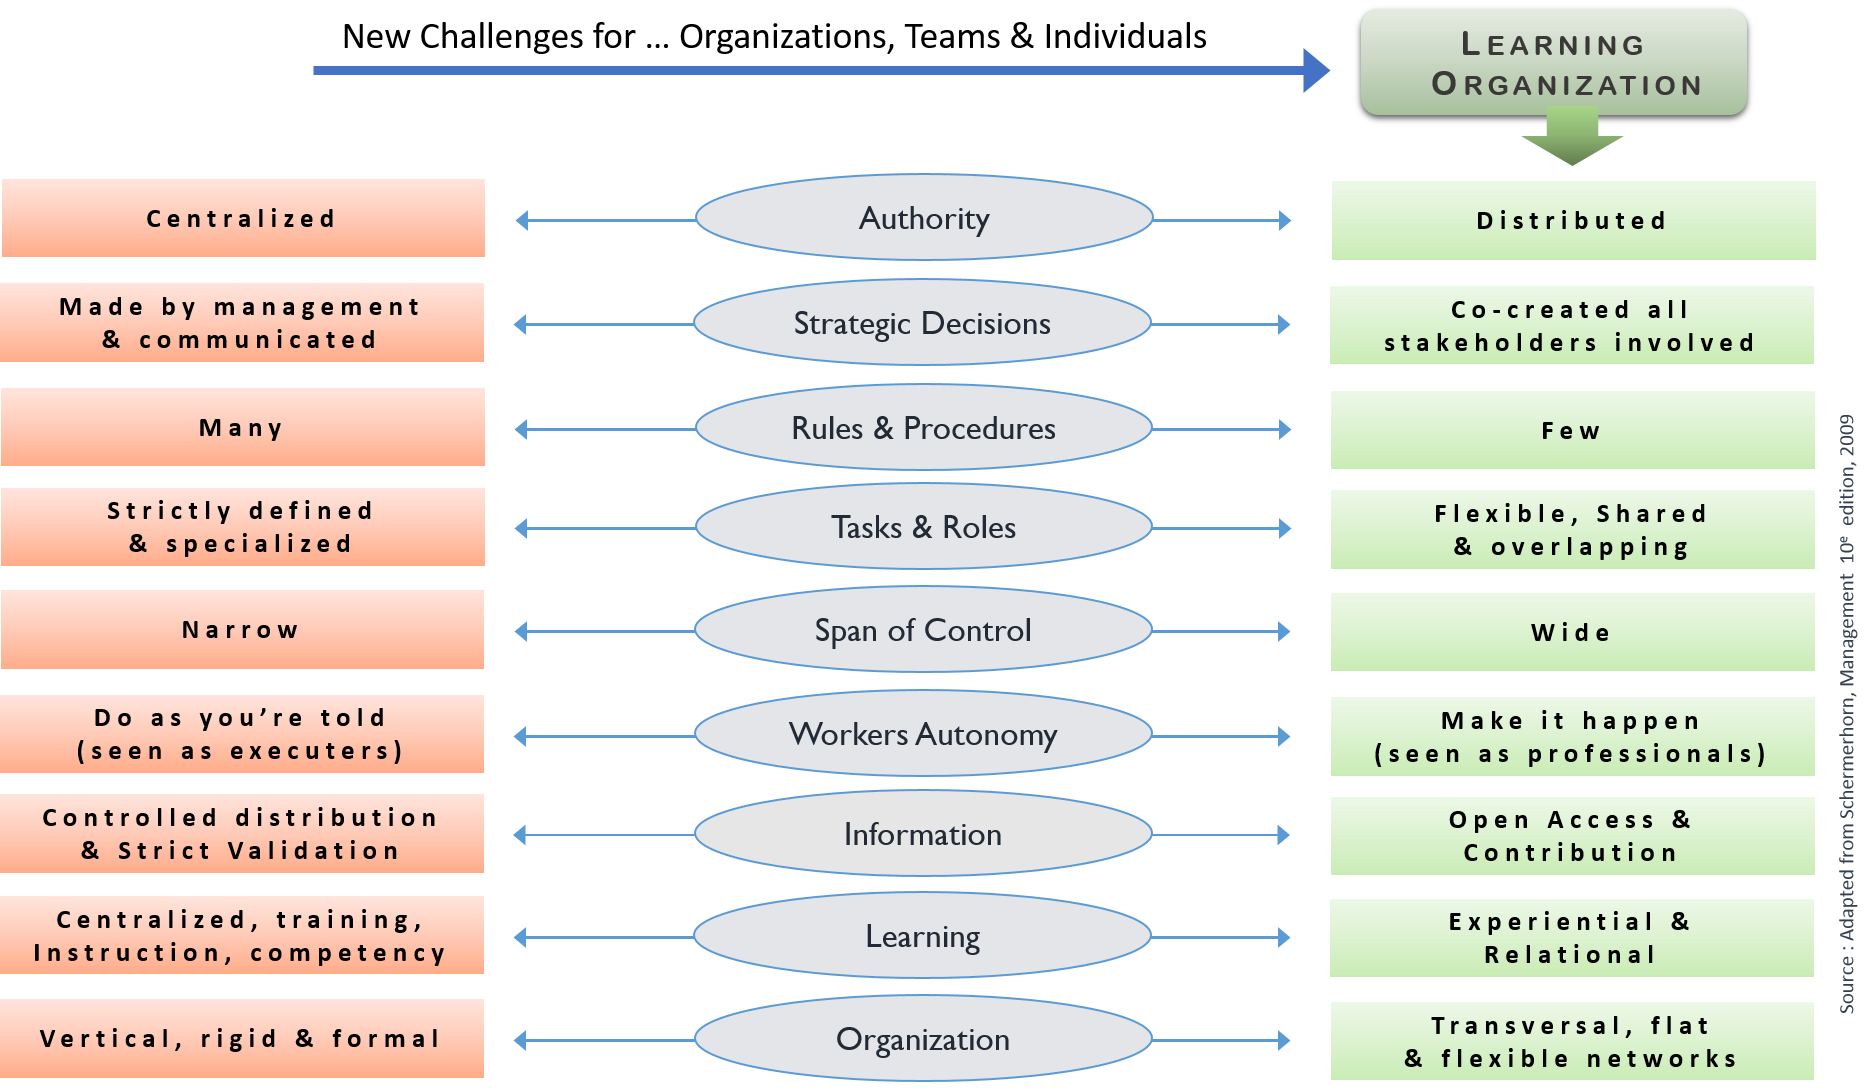 learning in a mechanistic organization A mechanistic organization is an organizational structure that is characterized by high specialization, rigid departmentalization, narrow spans of control, high formalization, a limited information.